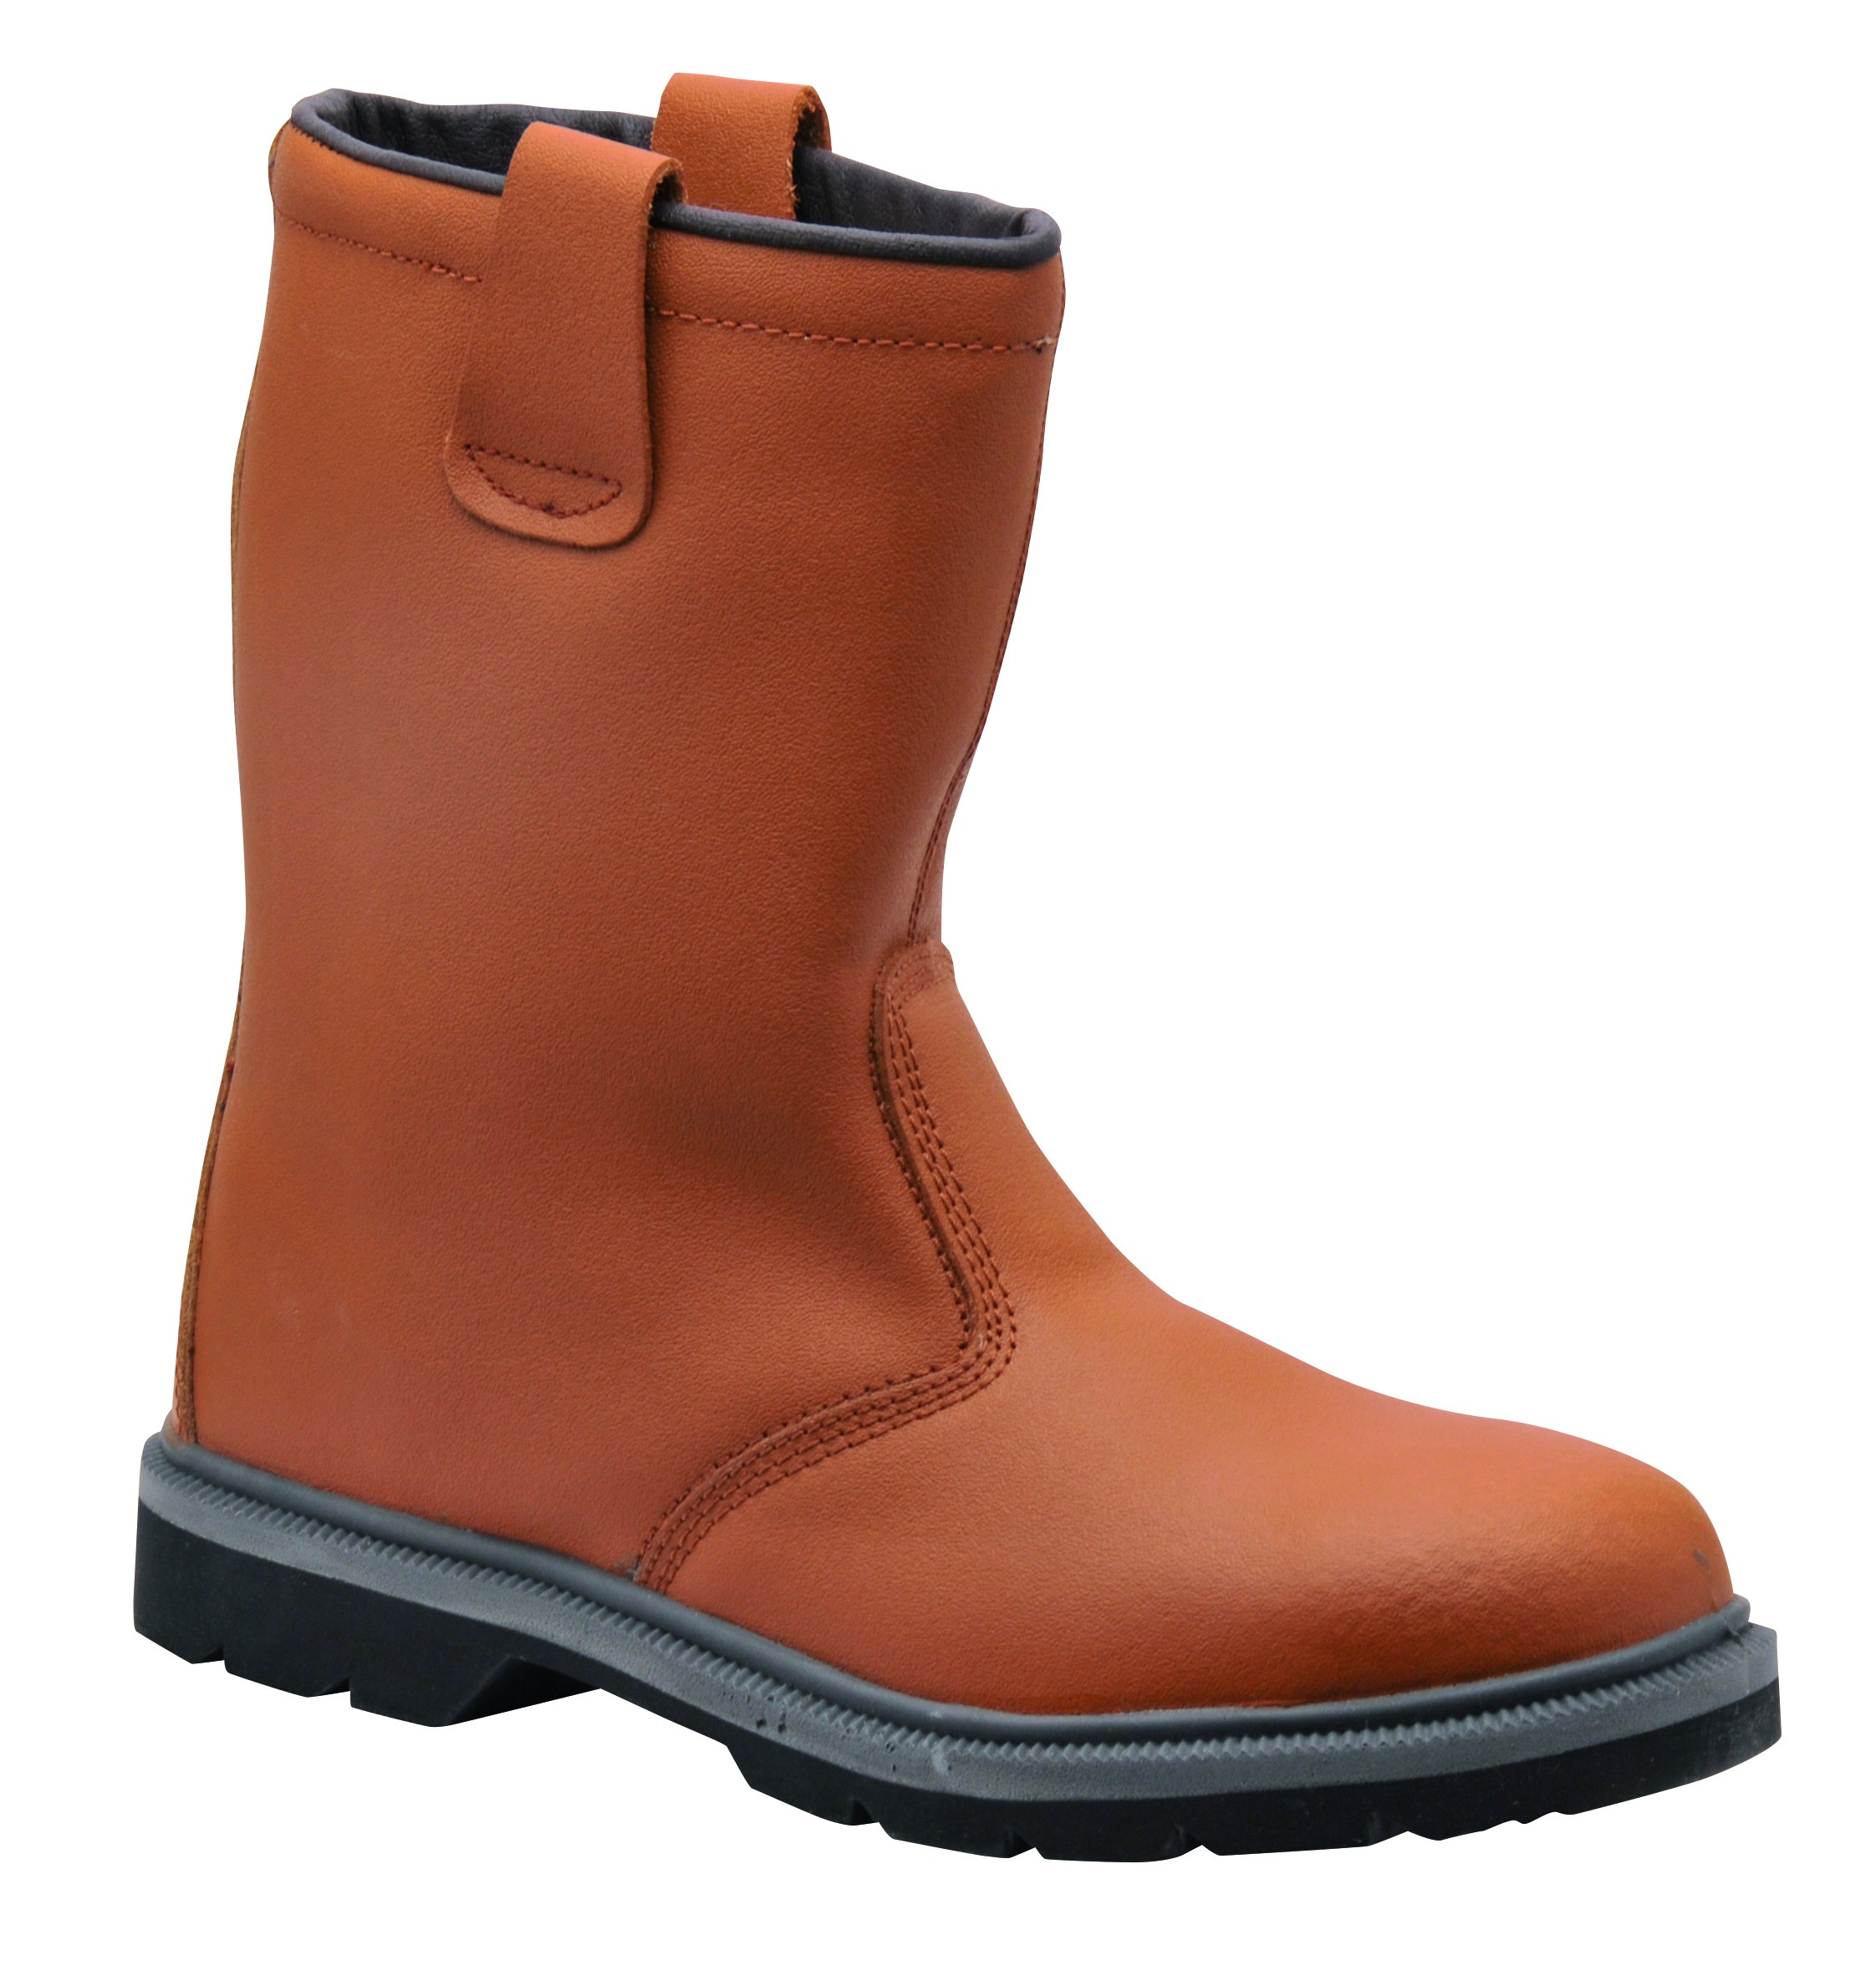 Basic Rigger Boots